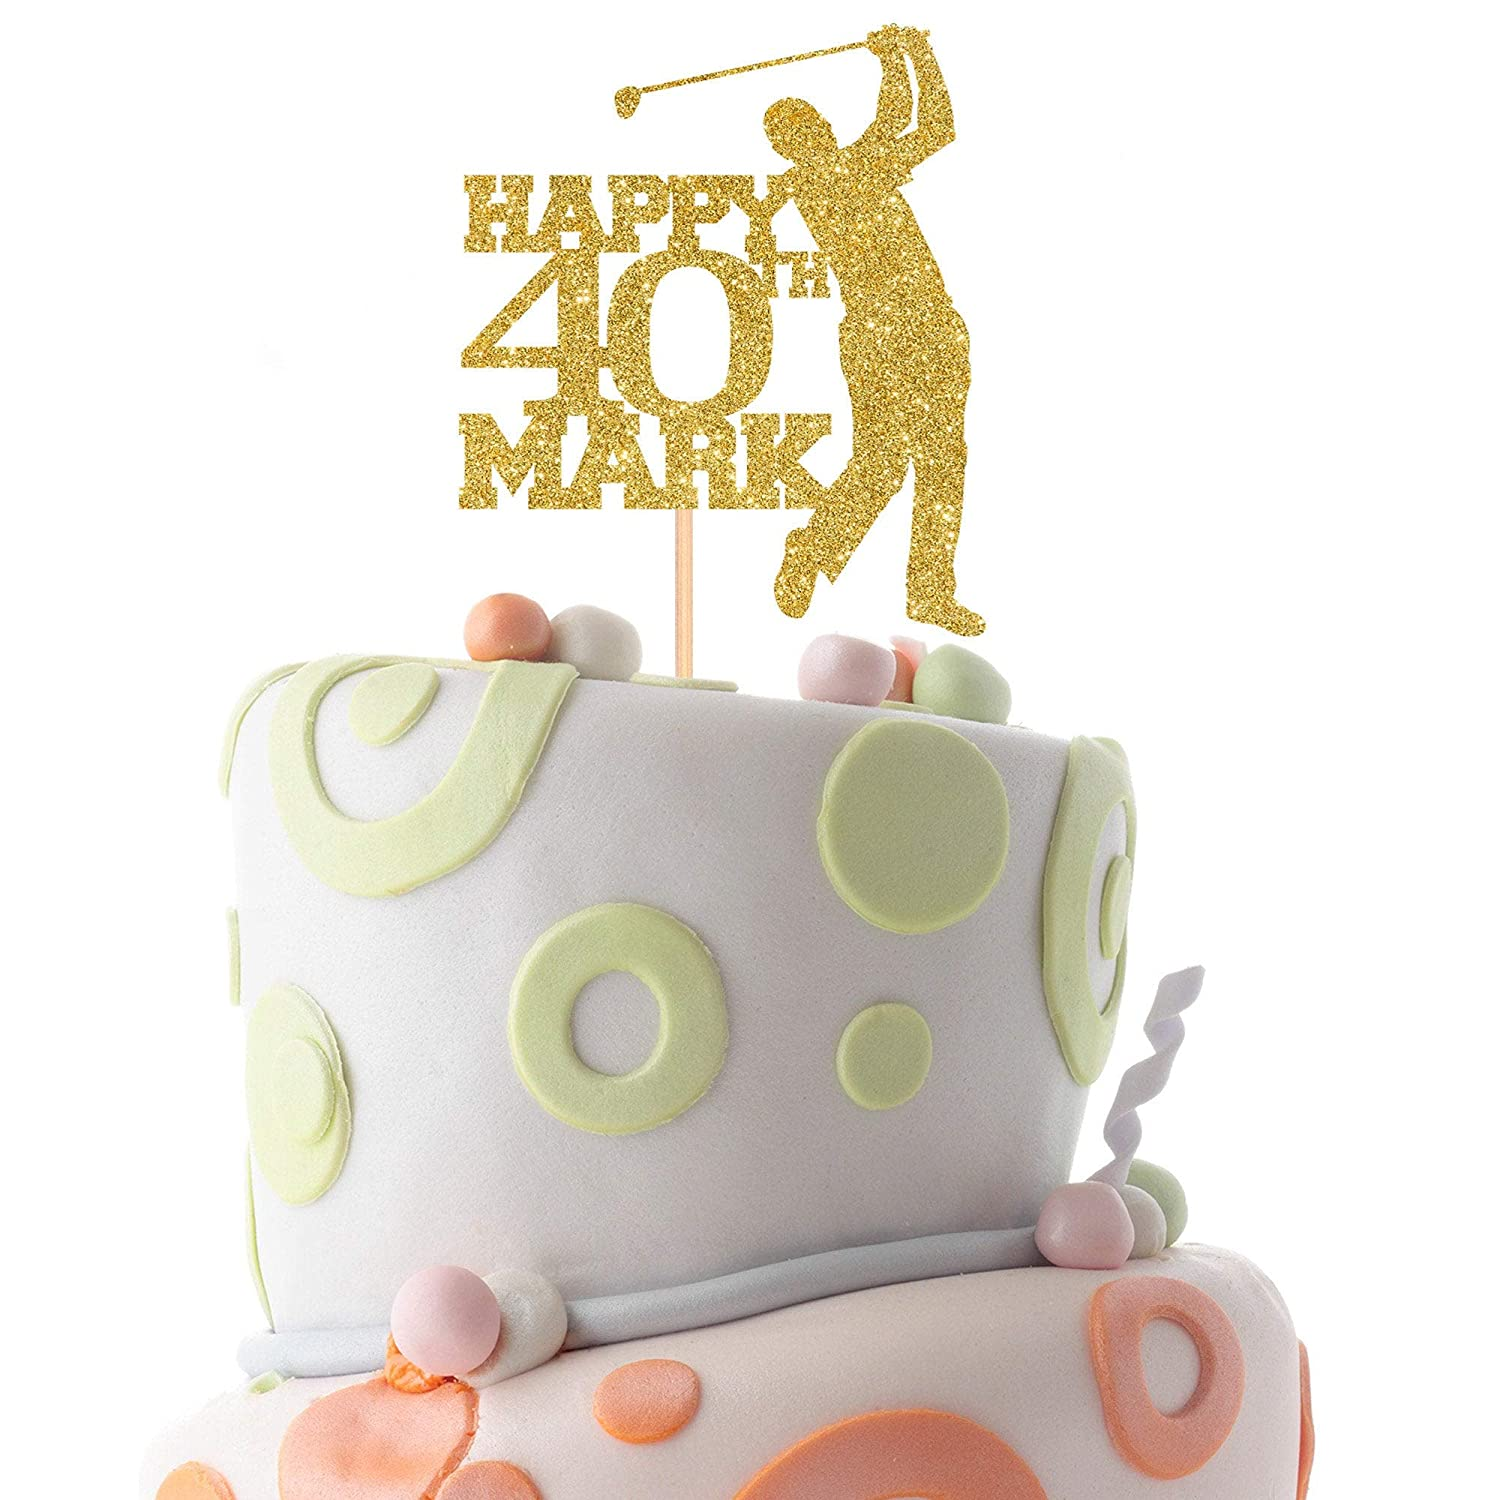 Awe Inspiring Amazon Com Personalised Golf Birthday Cake Topper With Name And Funny Birthday Cards Online Aeocydamsfinfo